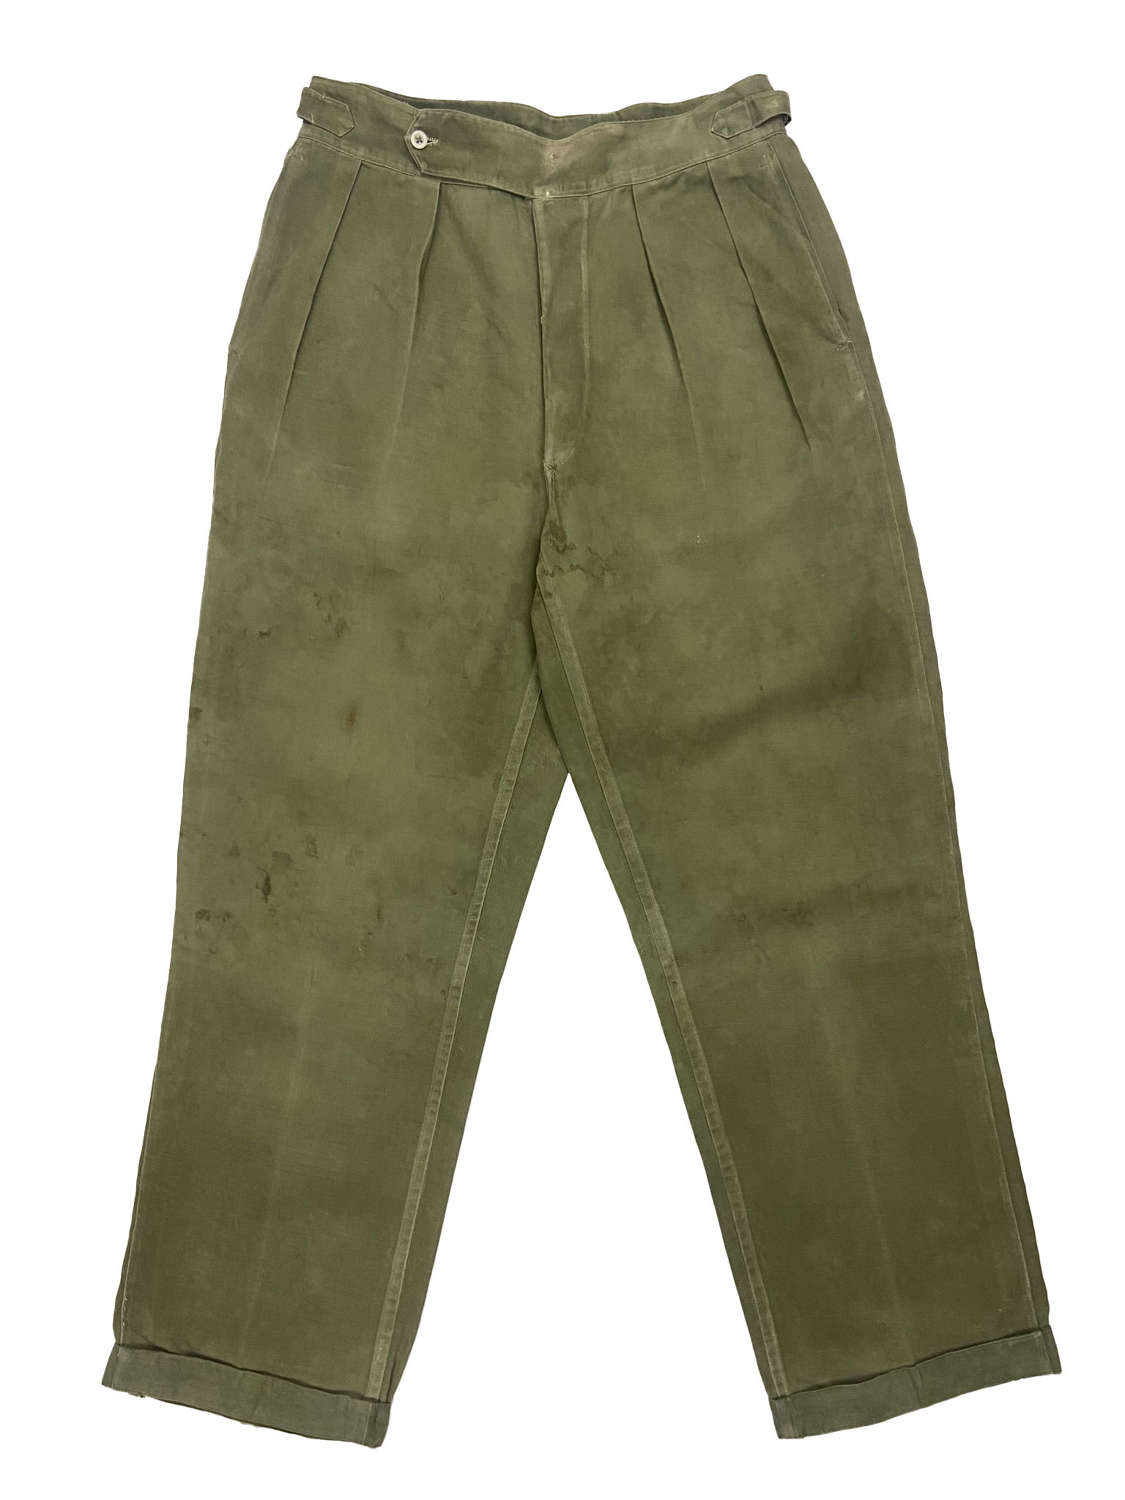 Original Early 1950s Theatre Made British Jungle Green Trousers